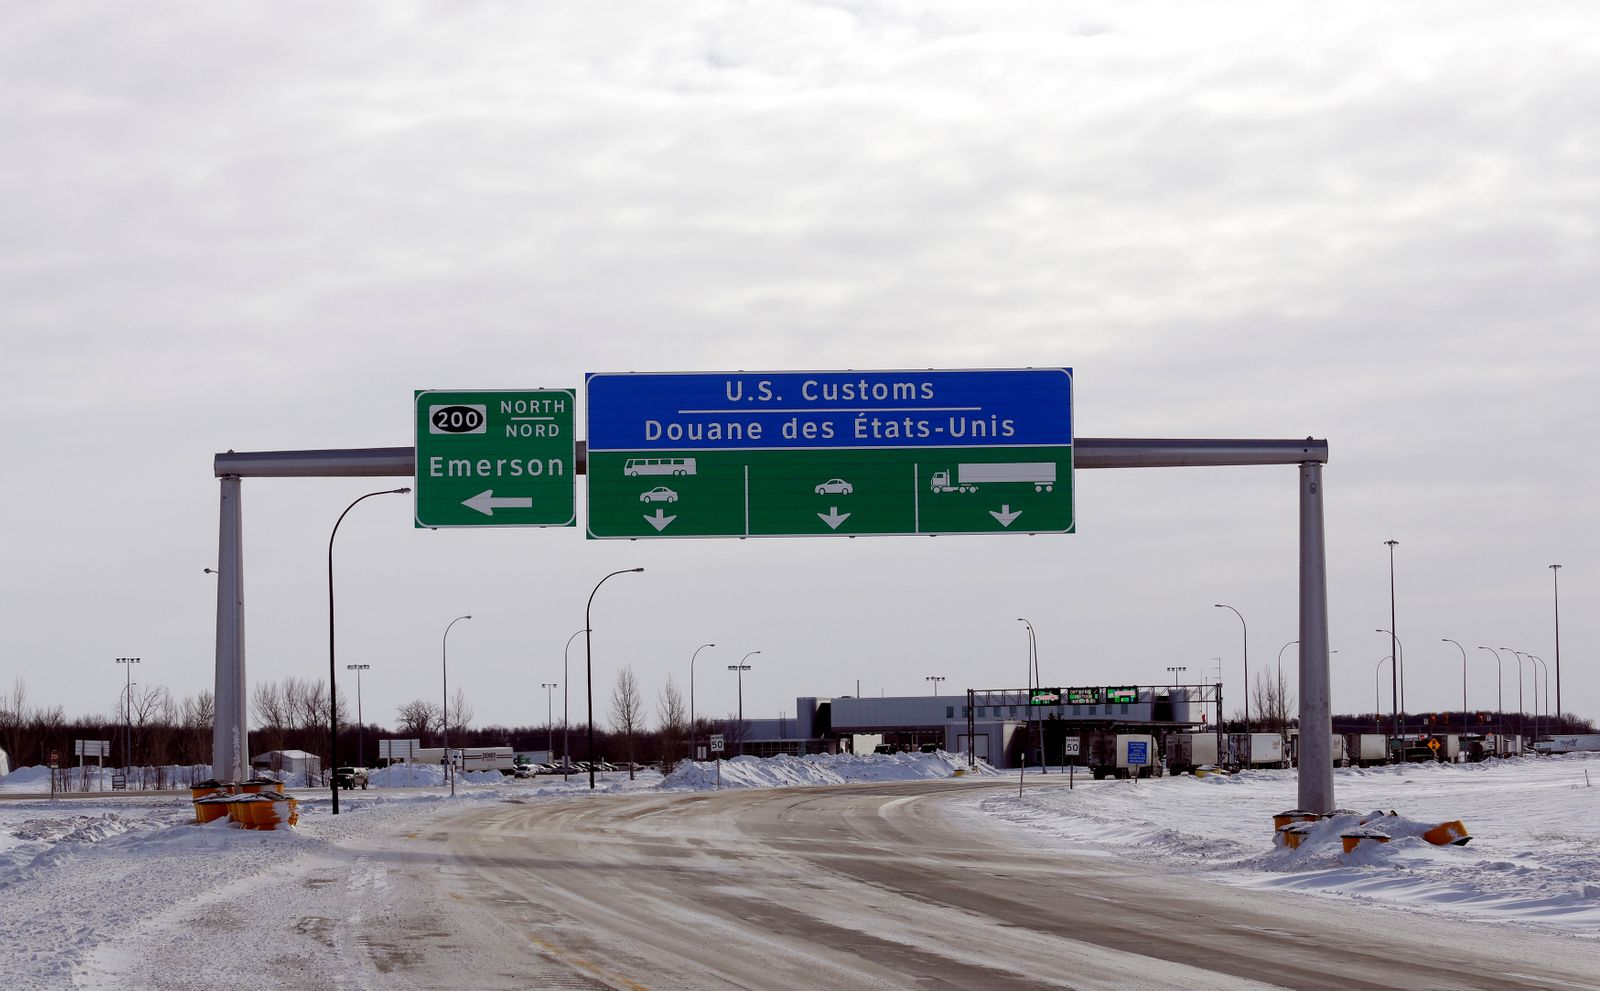 The Canadian side of the Canada-U.S border crossing, where refugees make their way into the province, is seen in Emerson